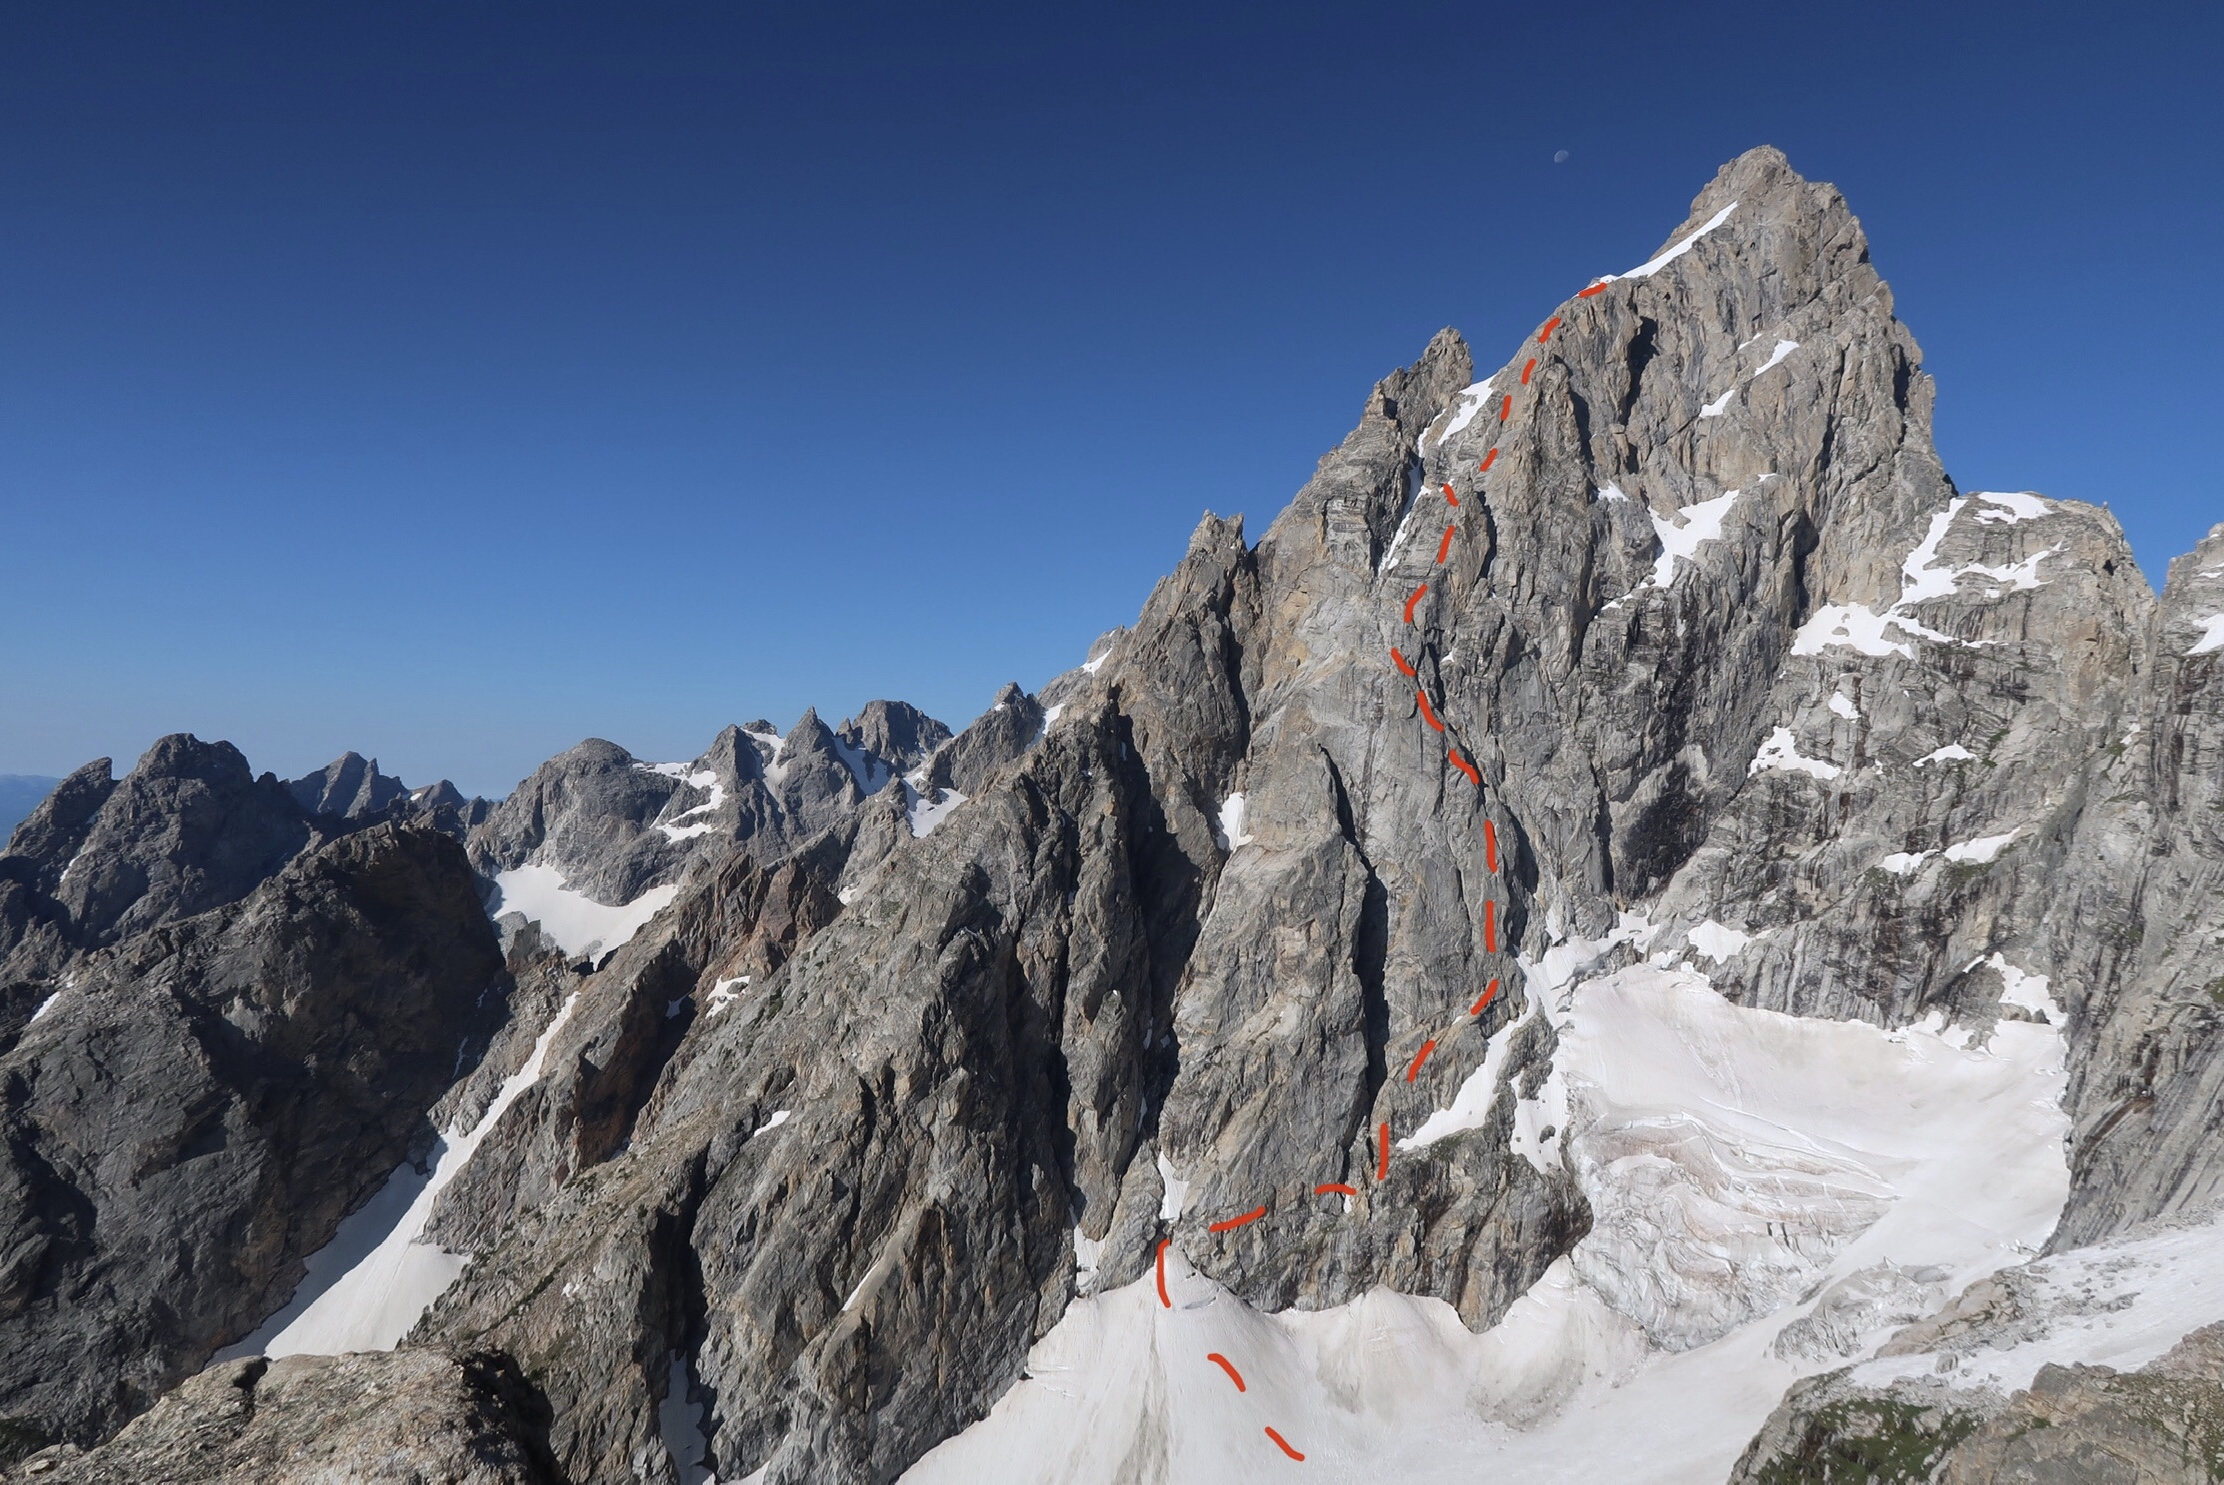 The north face of the Grand Teton with the approximate route of the North Buttress Direct drawn in red. The photo was taken from somewhere between Teewinot and Mt. Owen while on the Grand Traverse route a week earlier. [Image] Justin Bowen